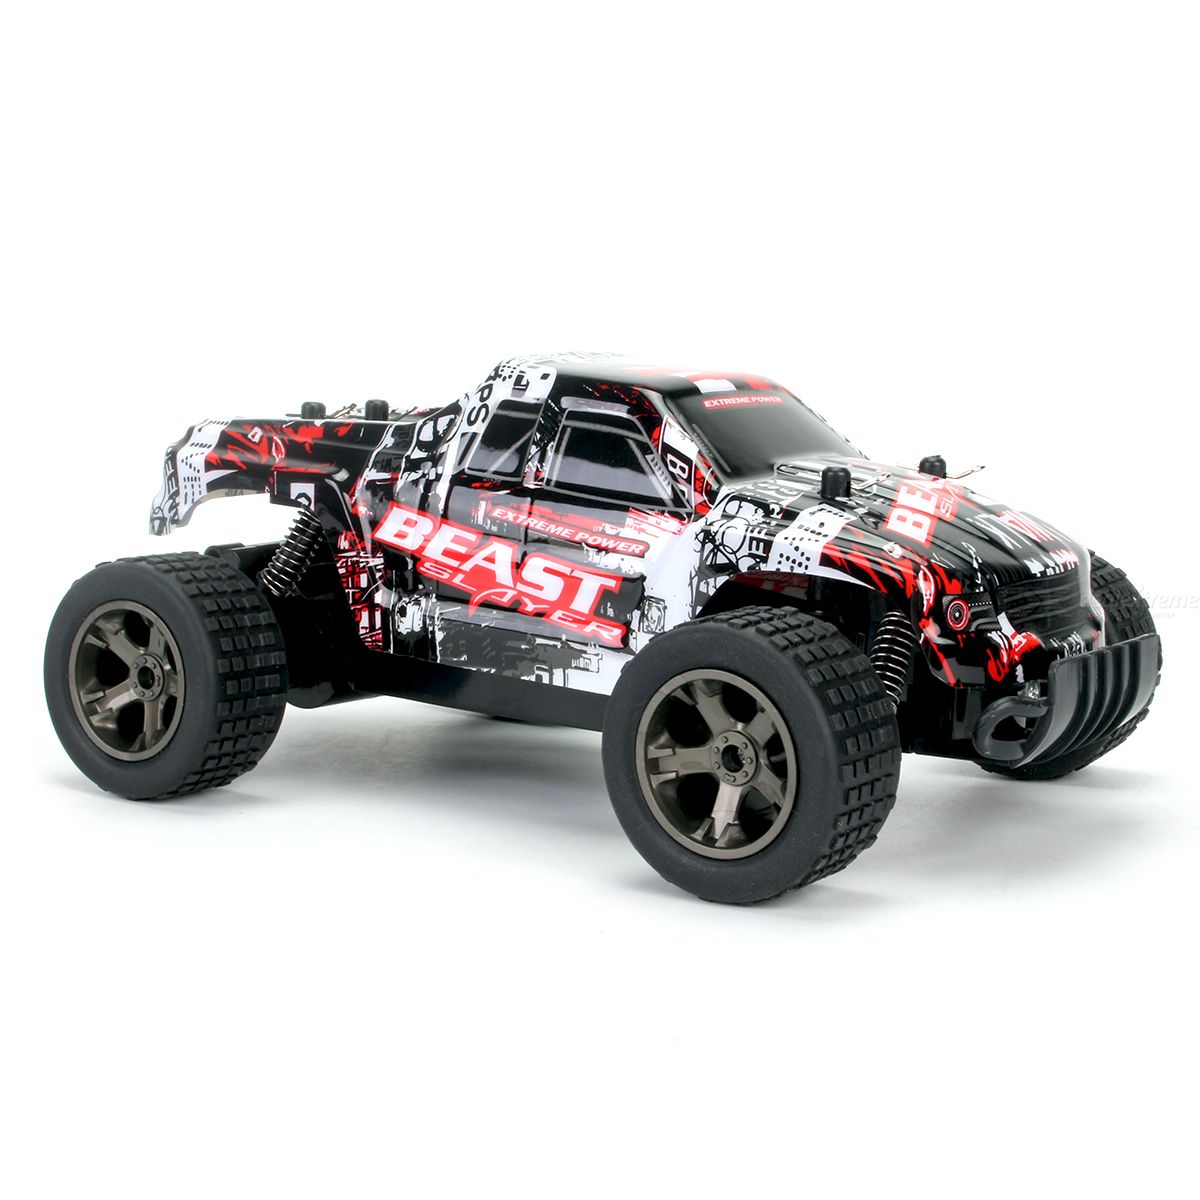 Kyamrc rc car 4-channel 2-wheel drive high-speed 2.4g remote control with simulated rubber tires for kids